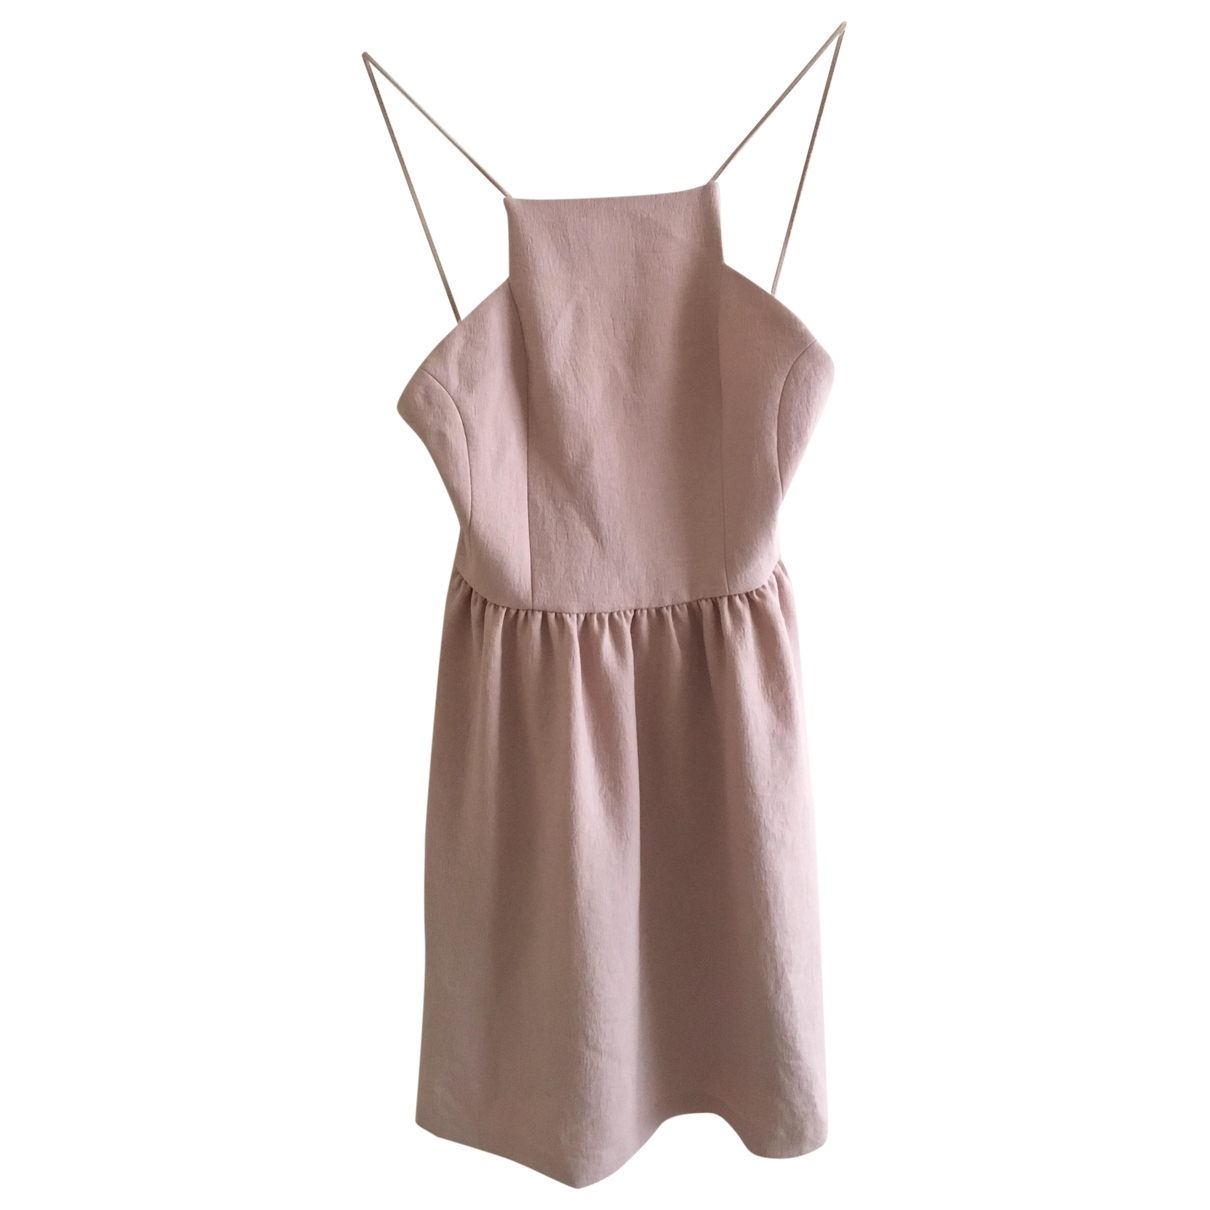 Maje \N Pink dress for Women 36 FR